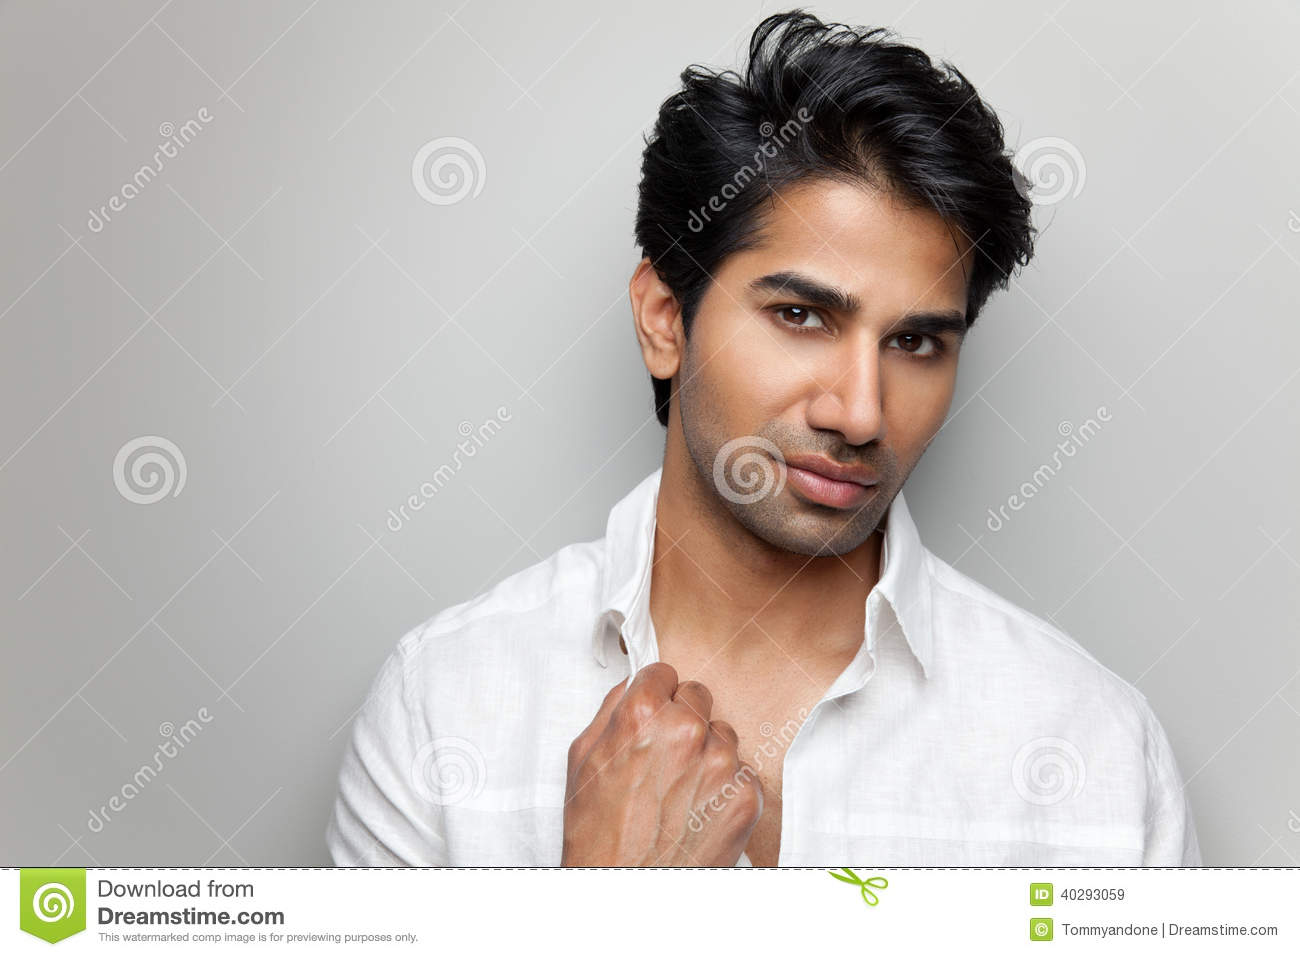 Portrait Of A Handsome Indian Man Stock Photo - Image ...